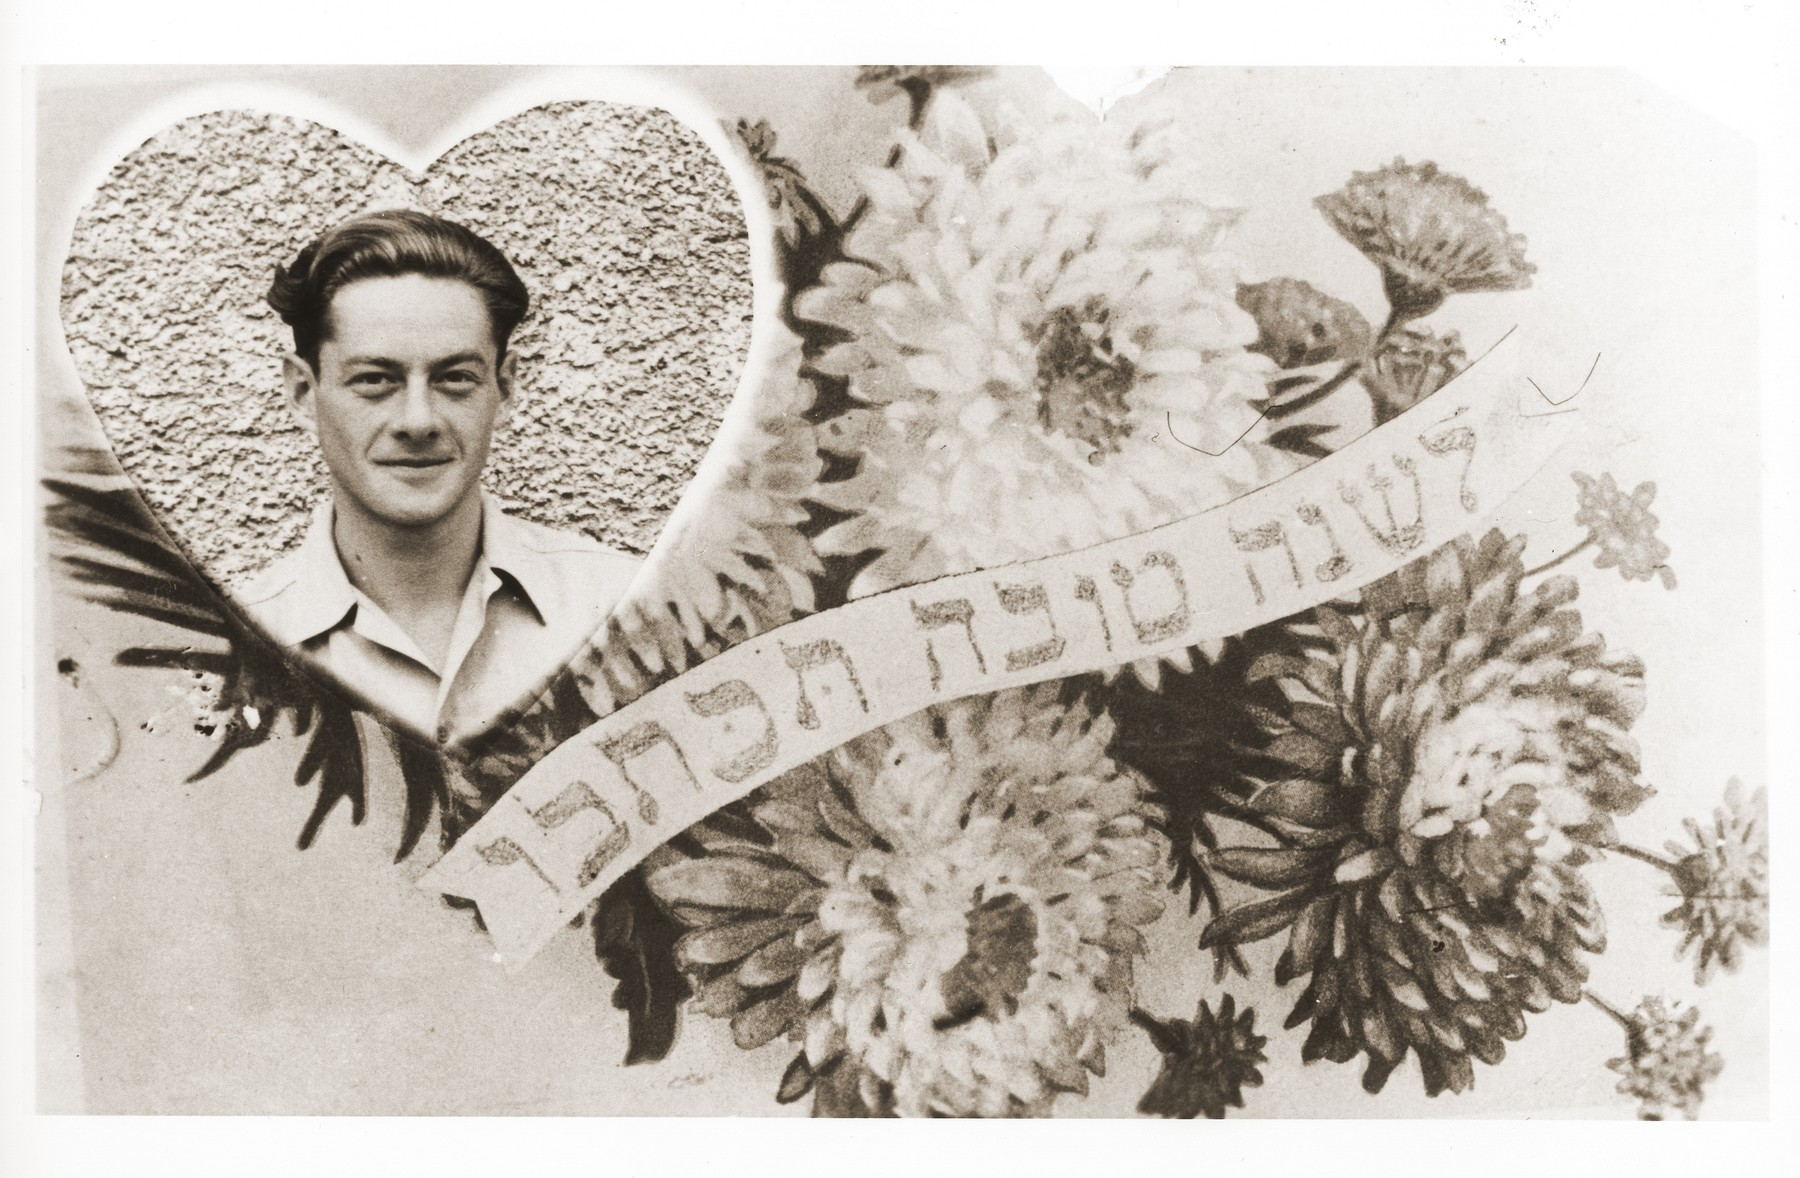 Personalized Jewish New Years card from the Foehrenwald displaced persons camp bearing a photograph of Oskar Littman.